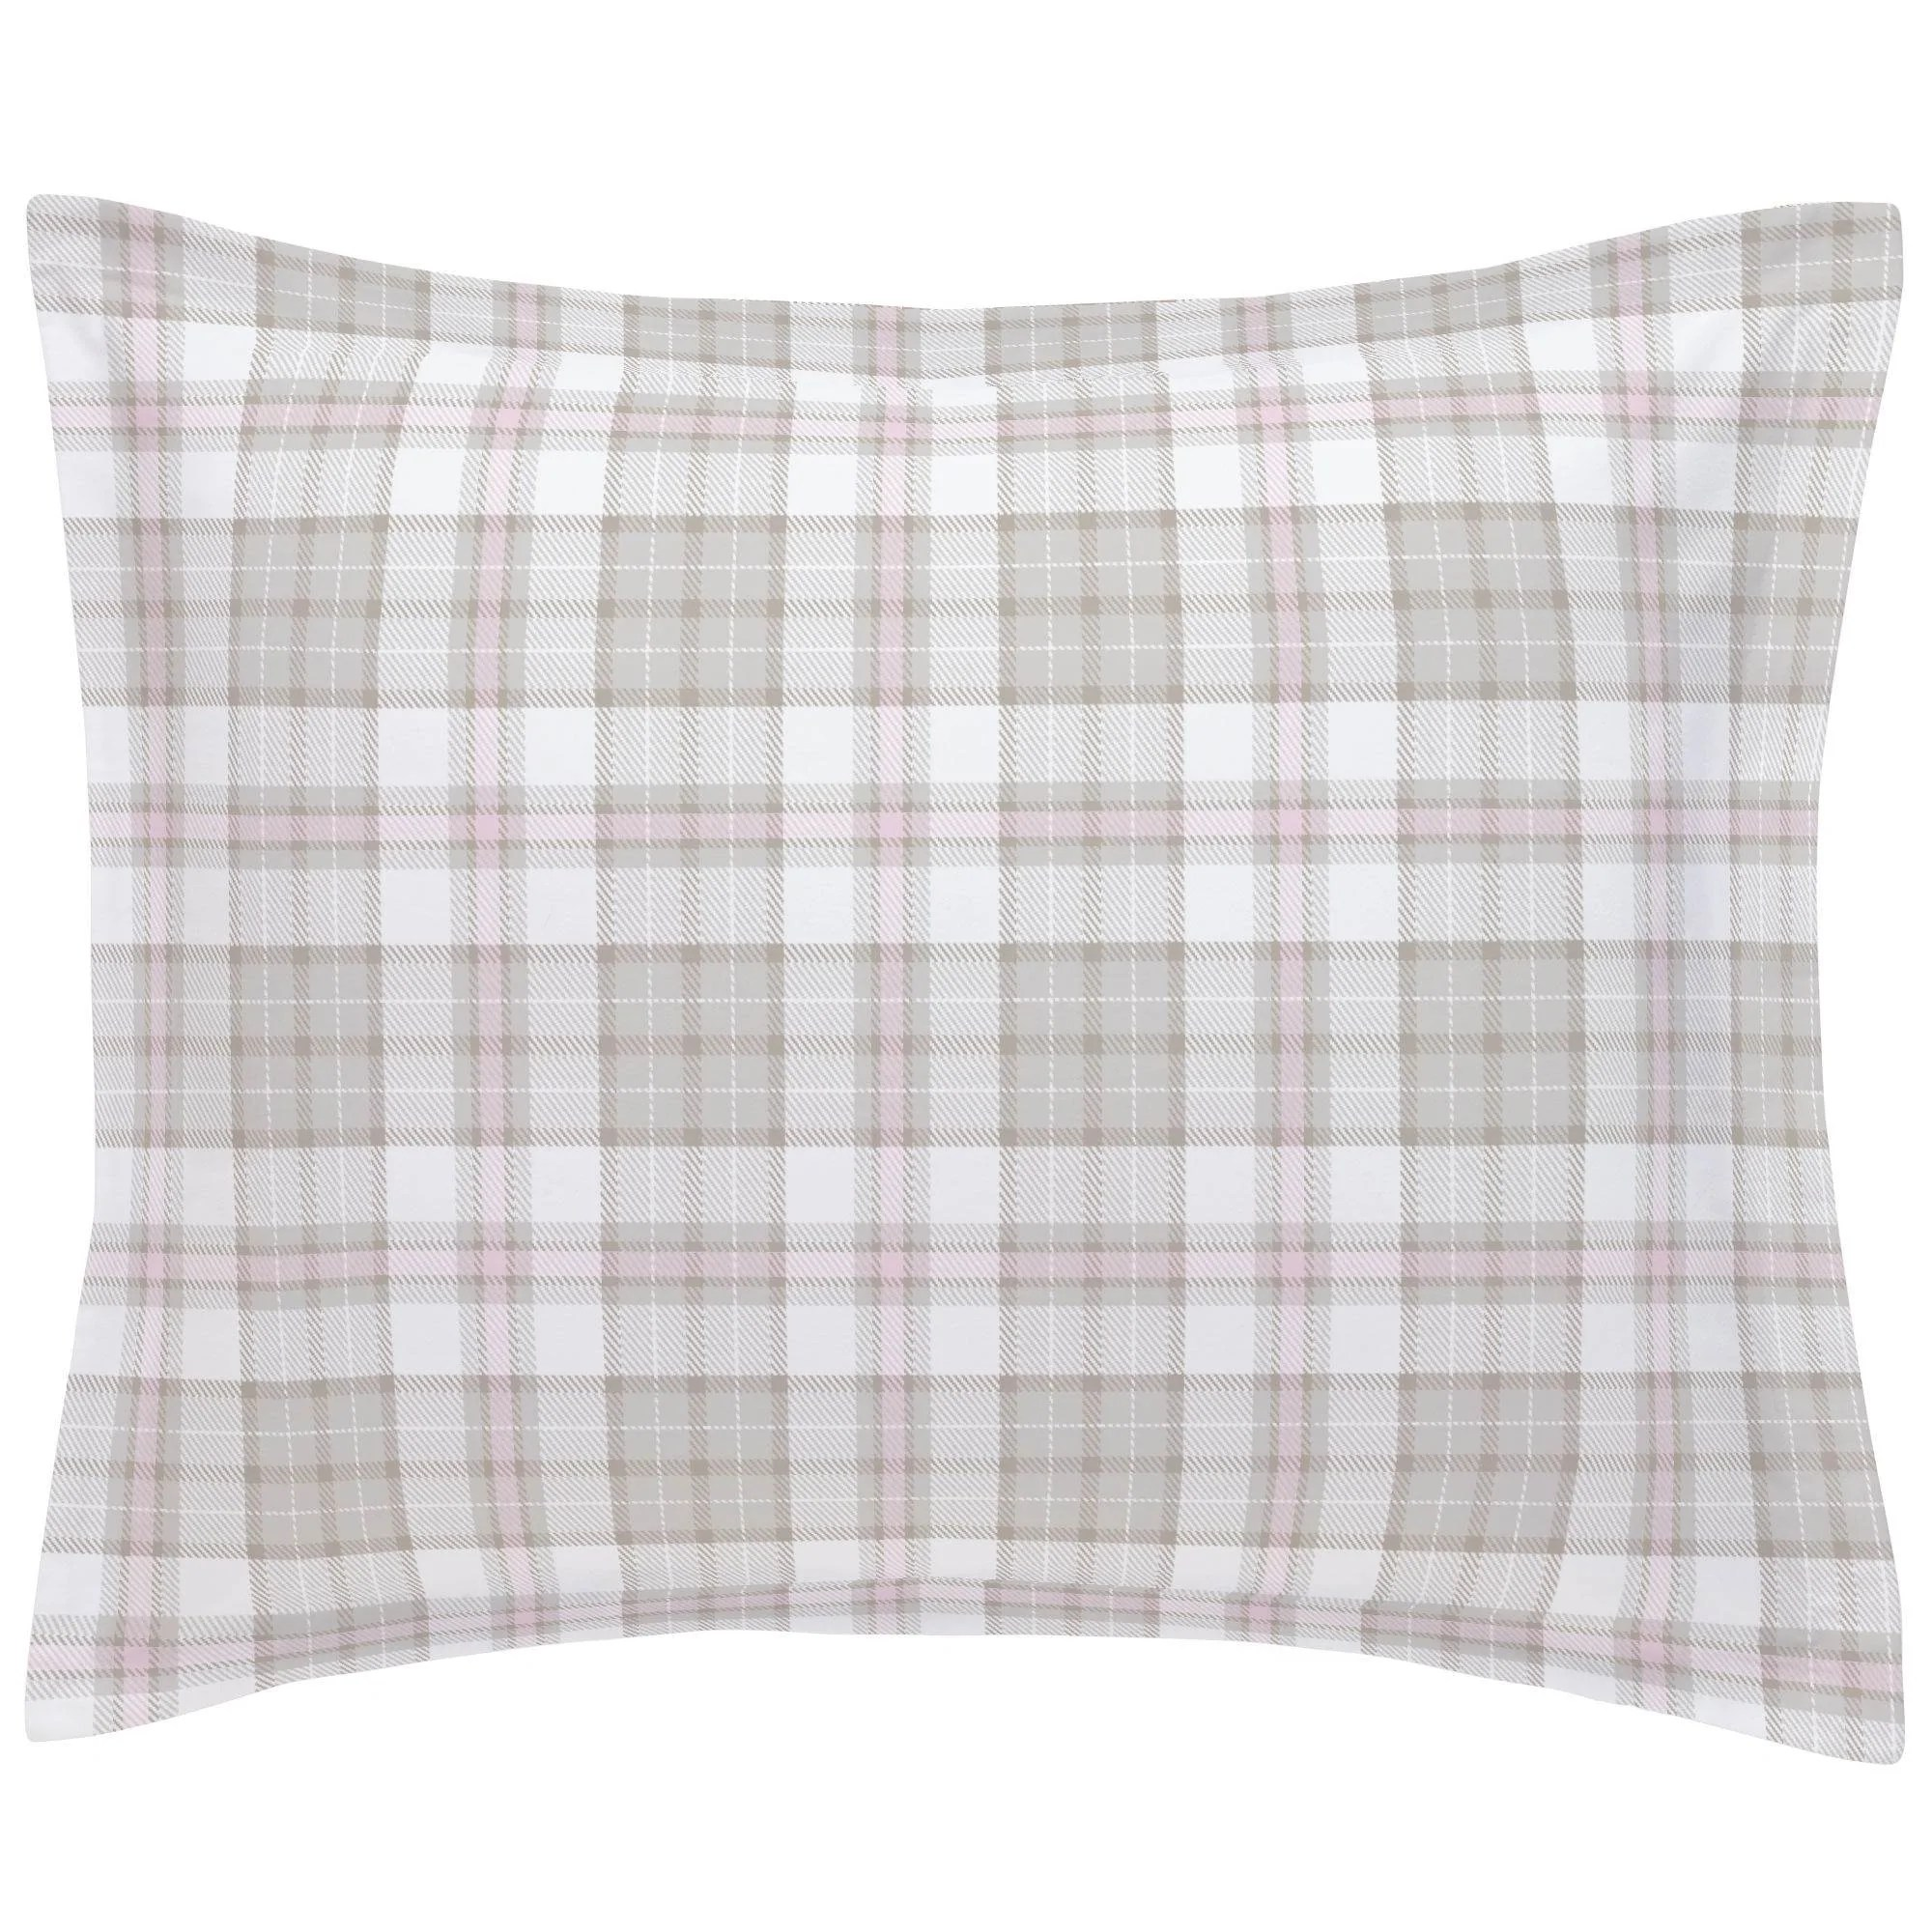 french gray and pink plaid pillow sham